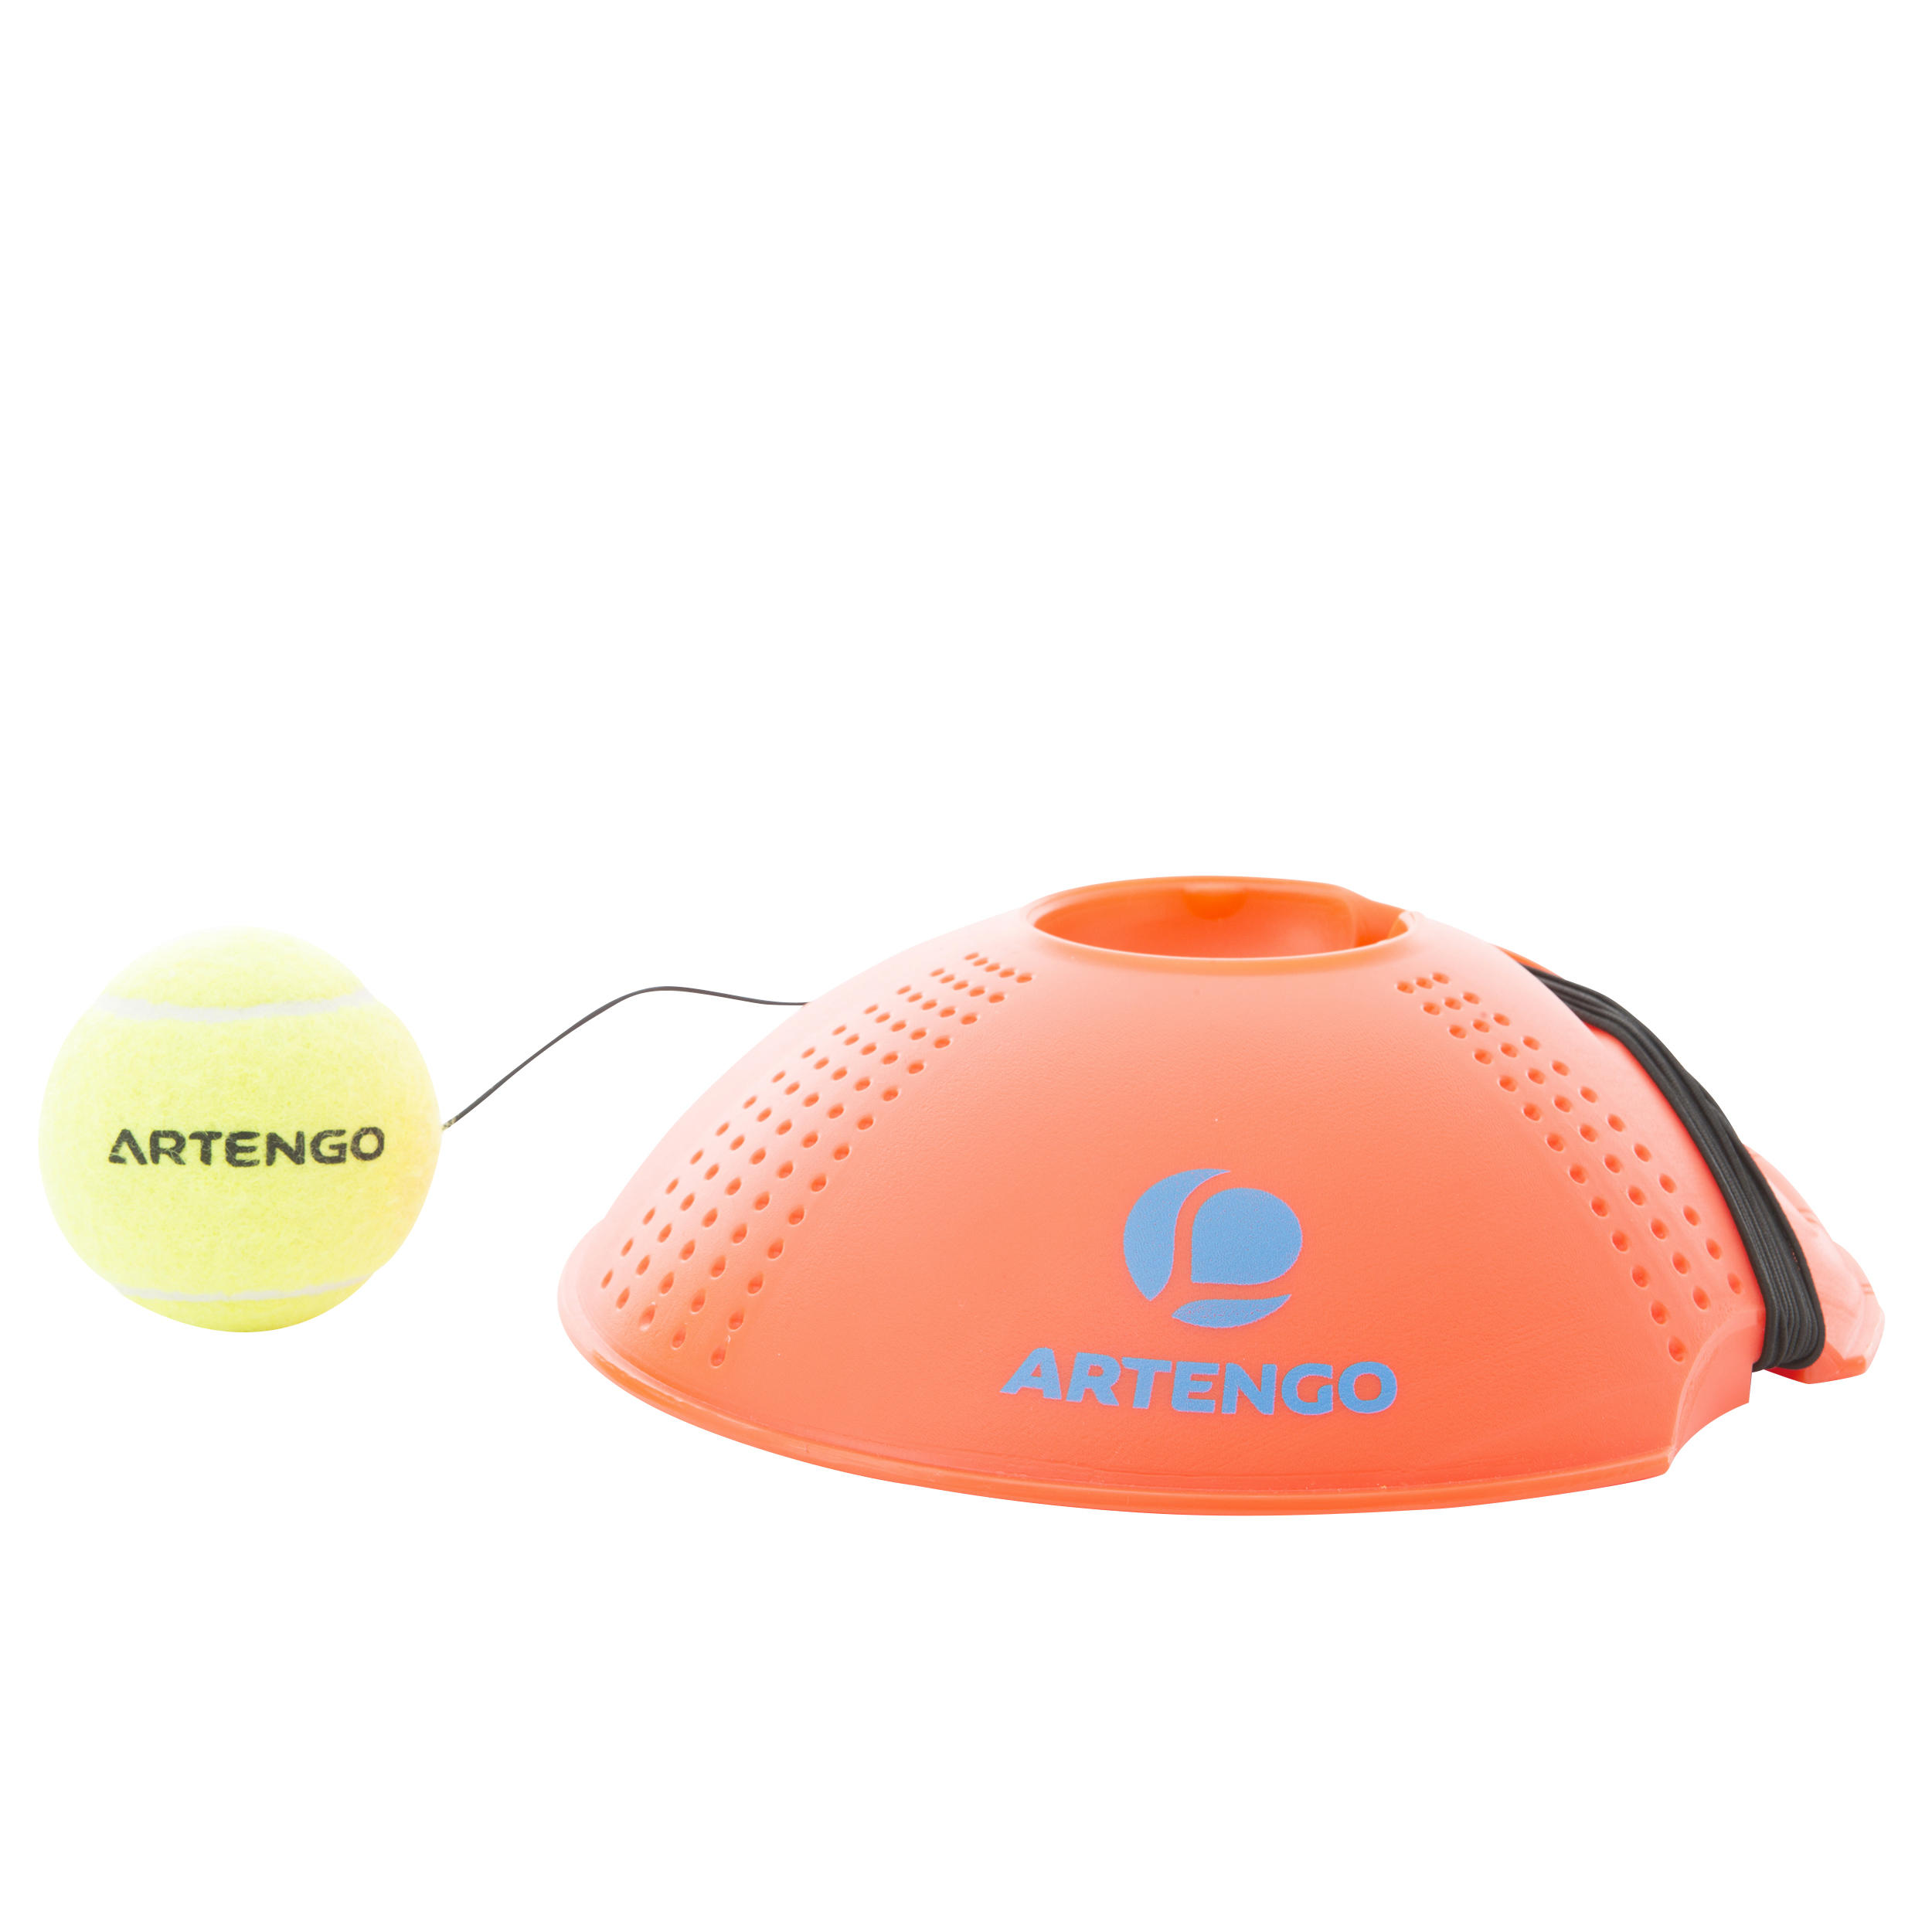 _QUOTE_Ball is back_QUOTE_ Tennis Trainer - Orange